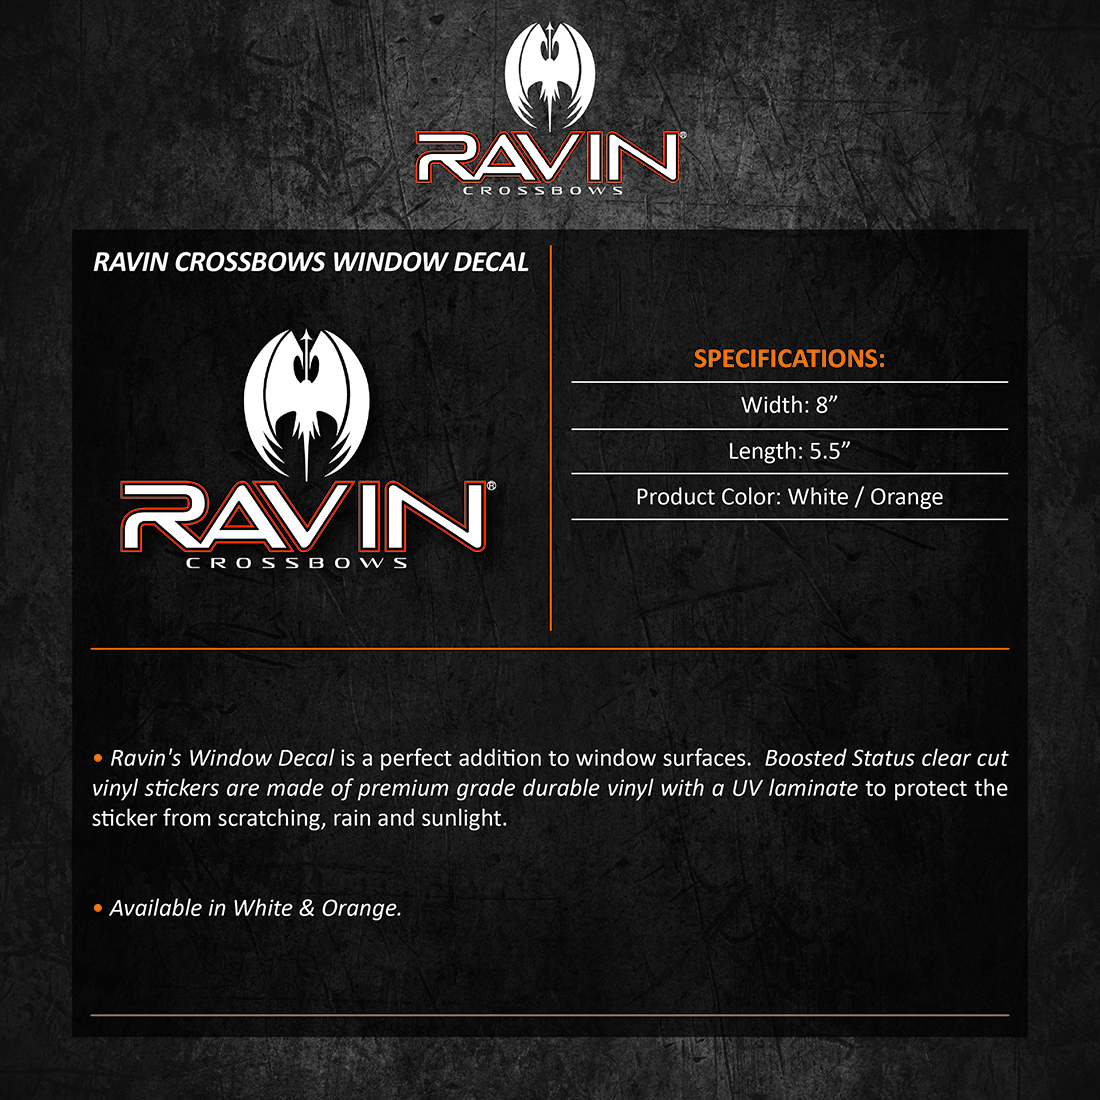 Ravin_Crossbows_Window_Decal_Product_Description